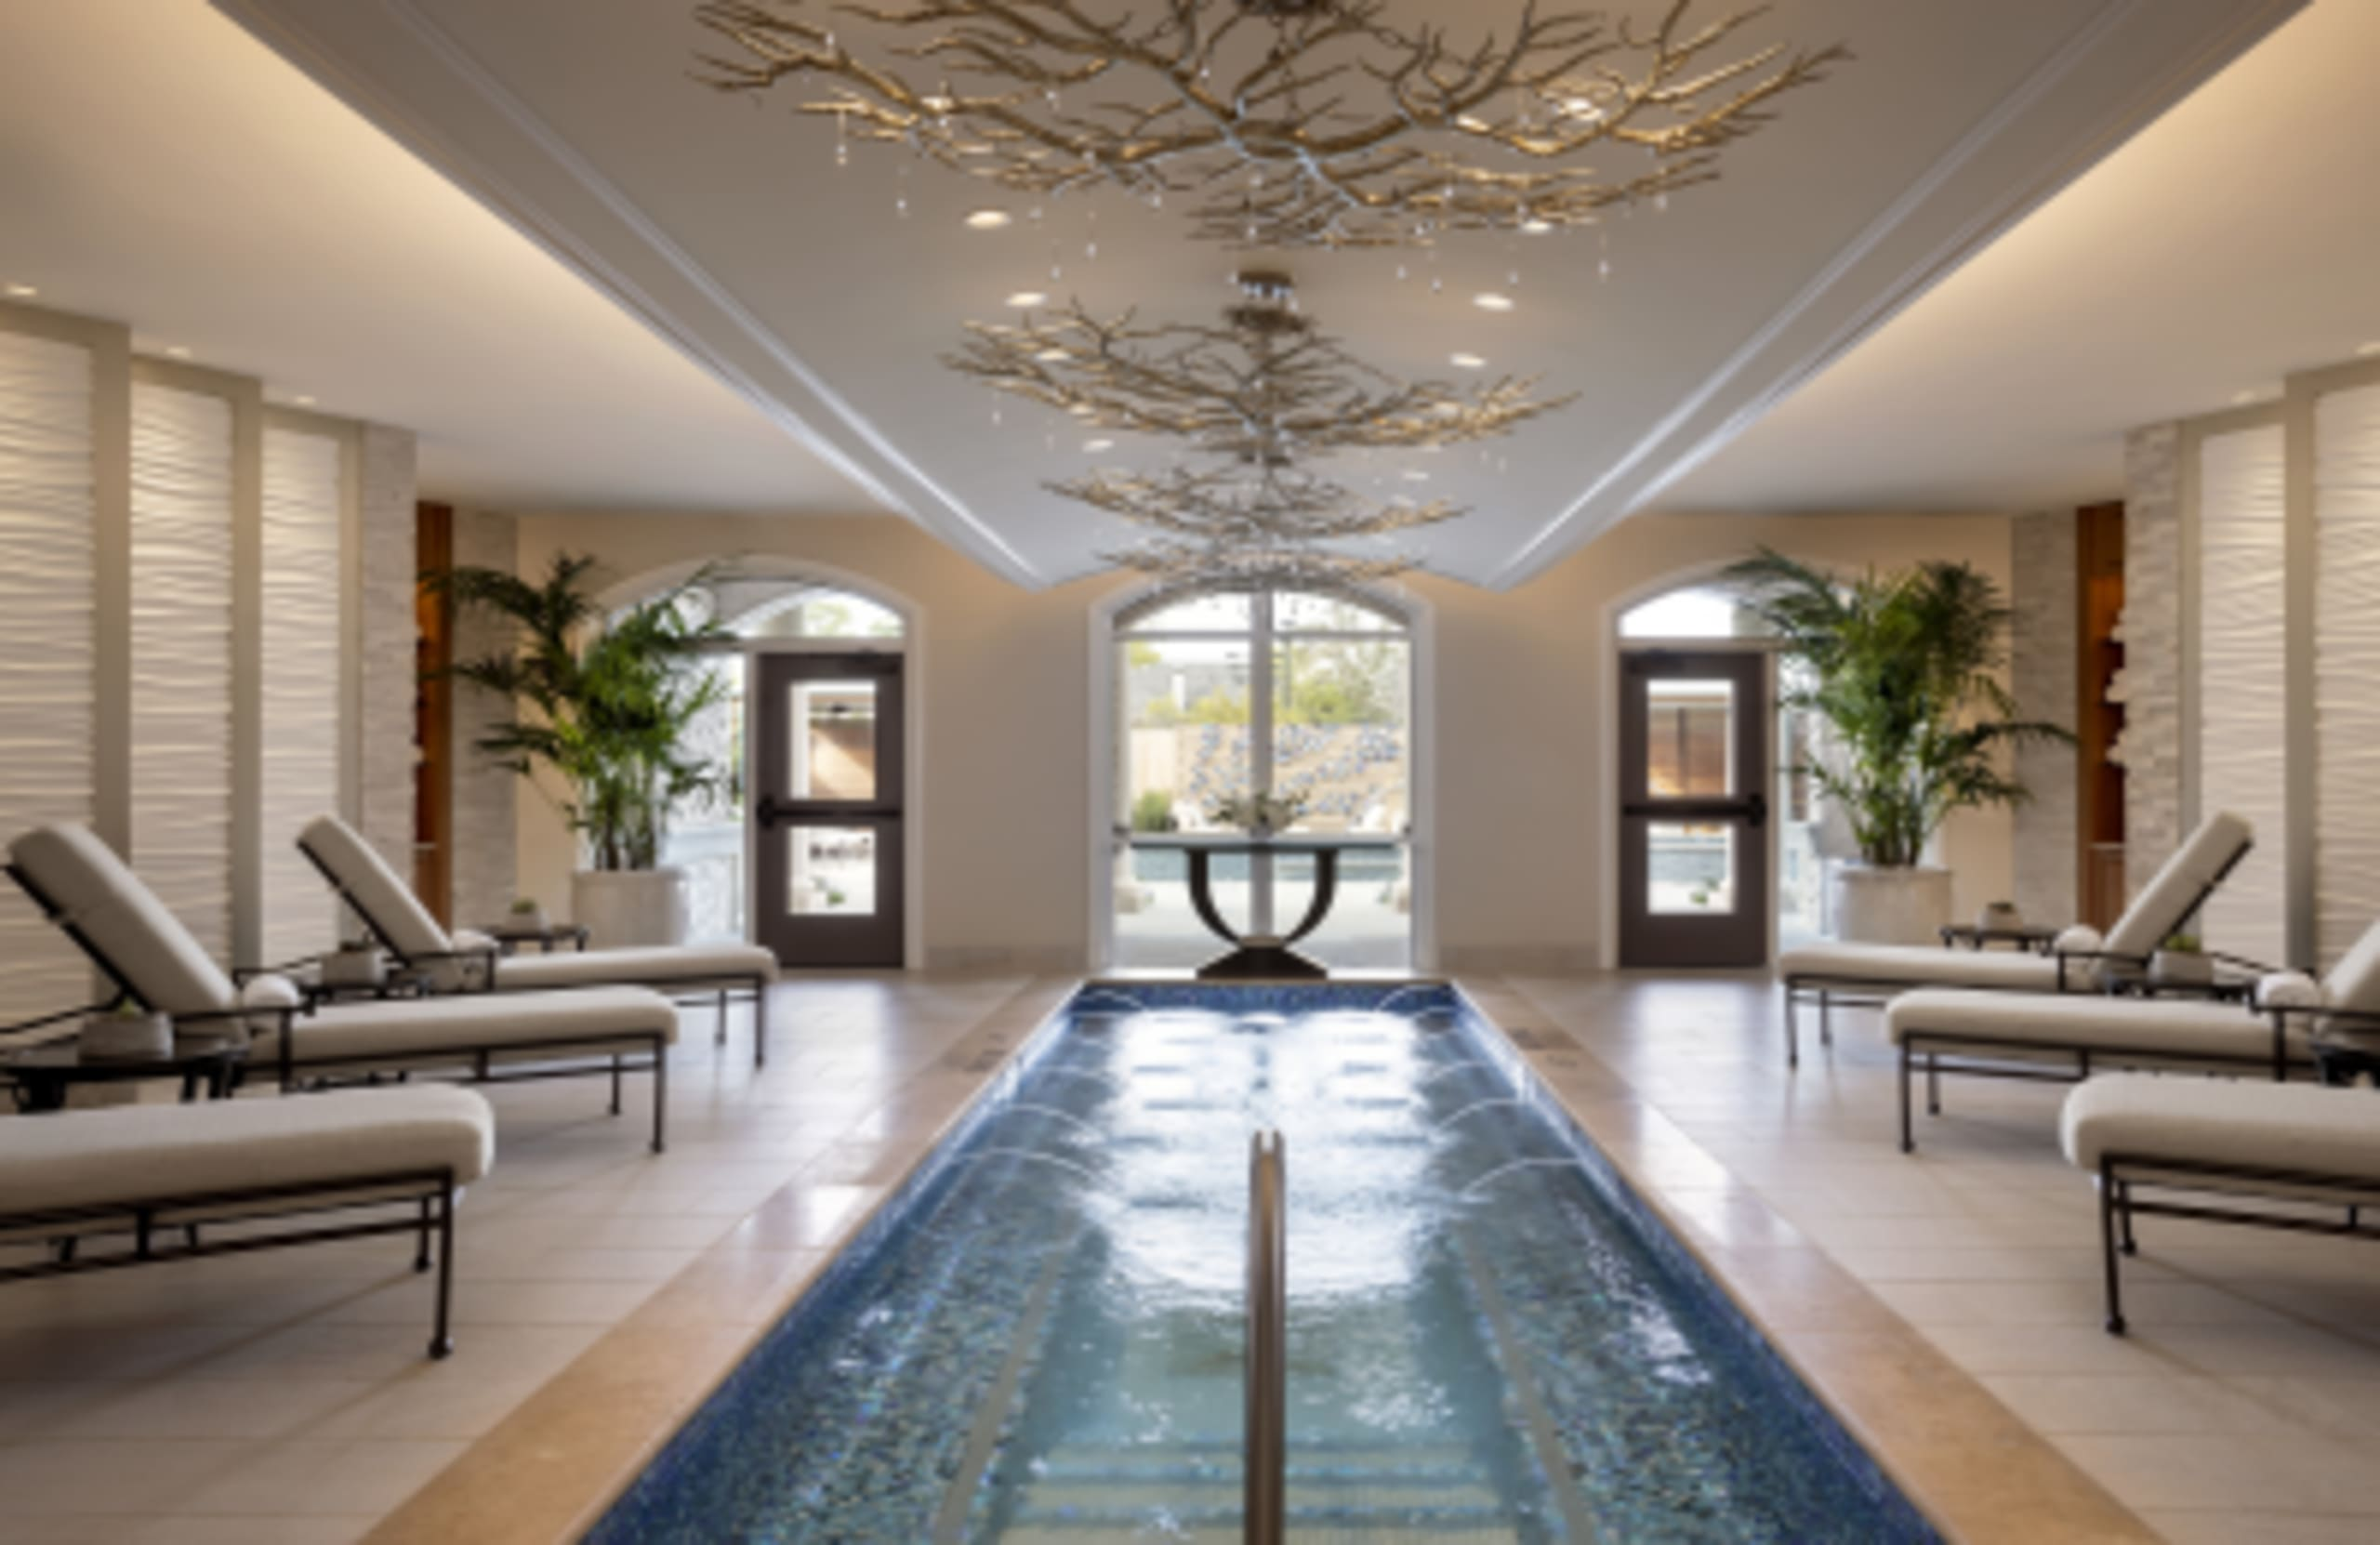 Royal treatment: 24 hours of spa bliss at one of Houston's poshest hotels